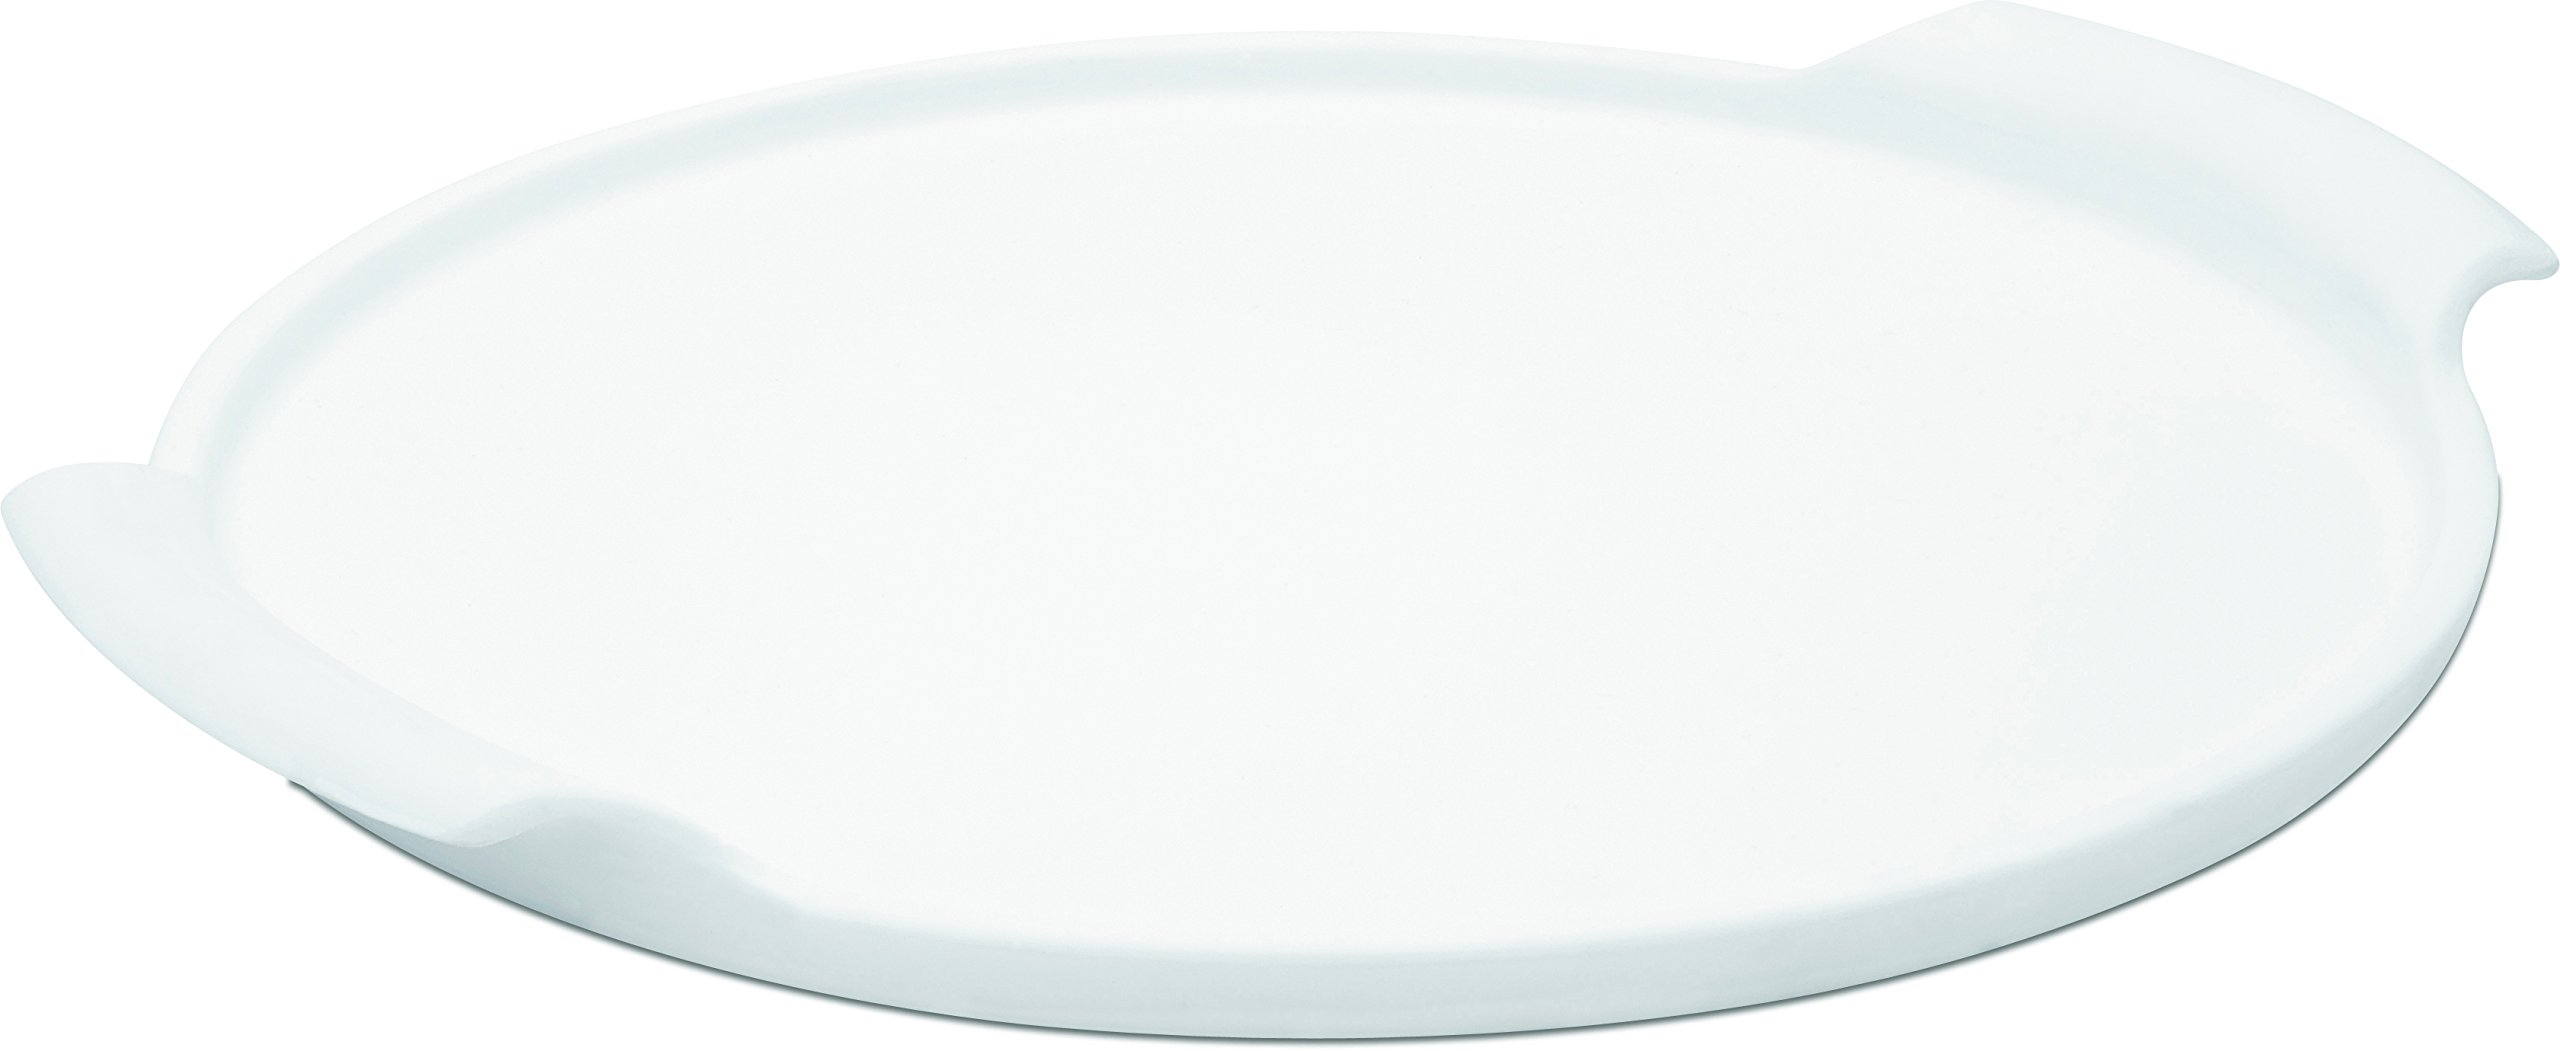 Oxford 7891361719679 Porcelain Pizza Stone with Handle, White